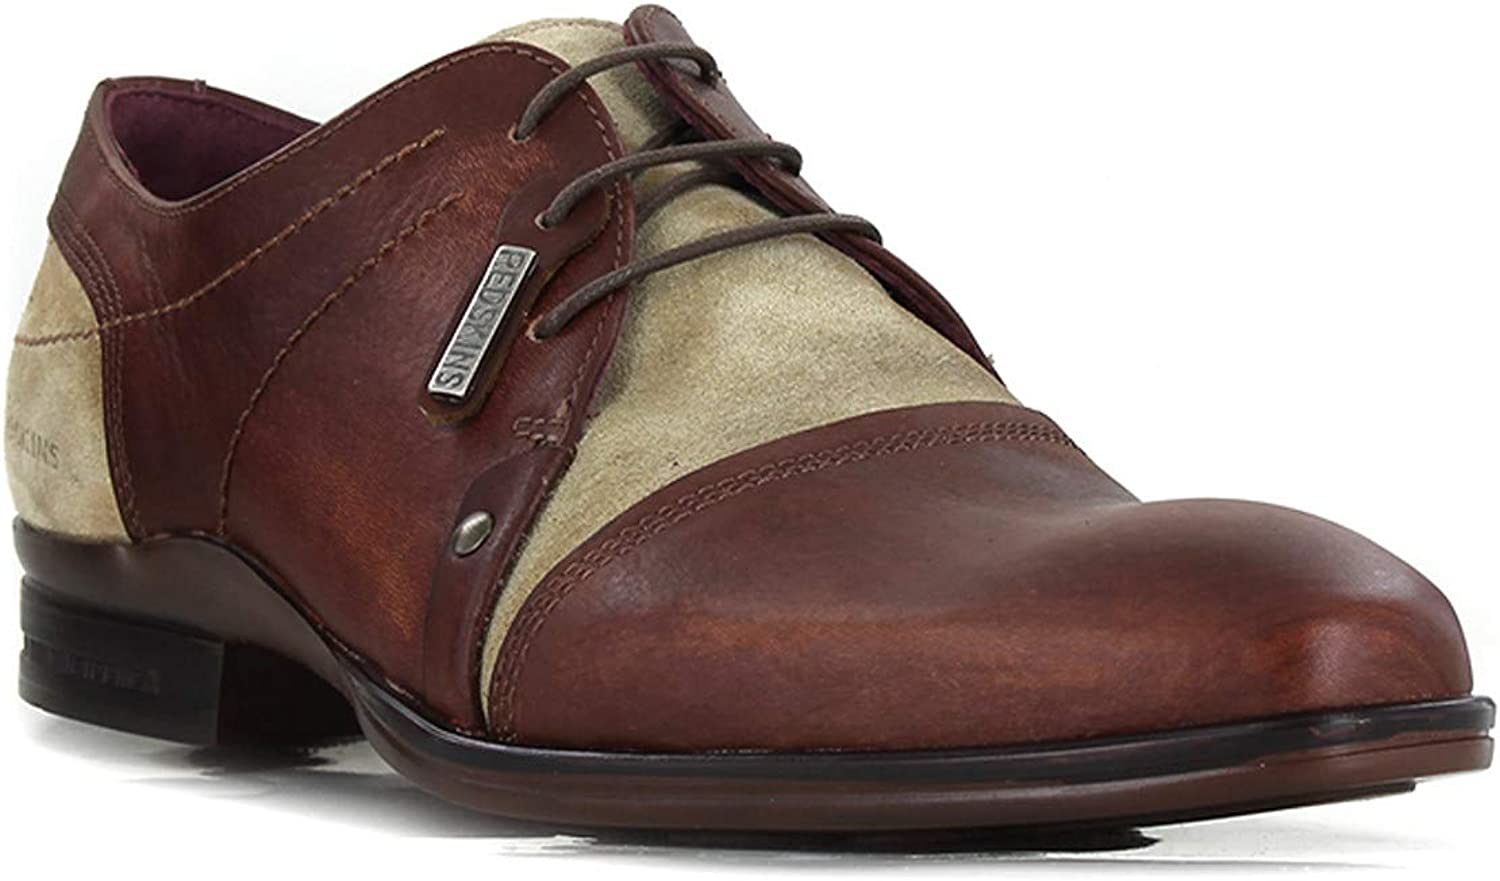 Redskins Juradi Tabac Taupe VS441GS790, City shoes